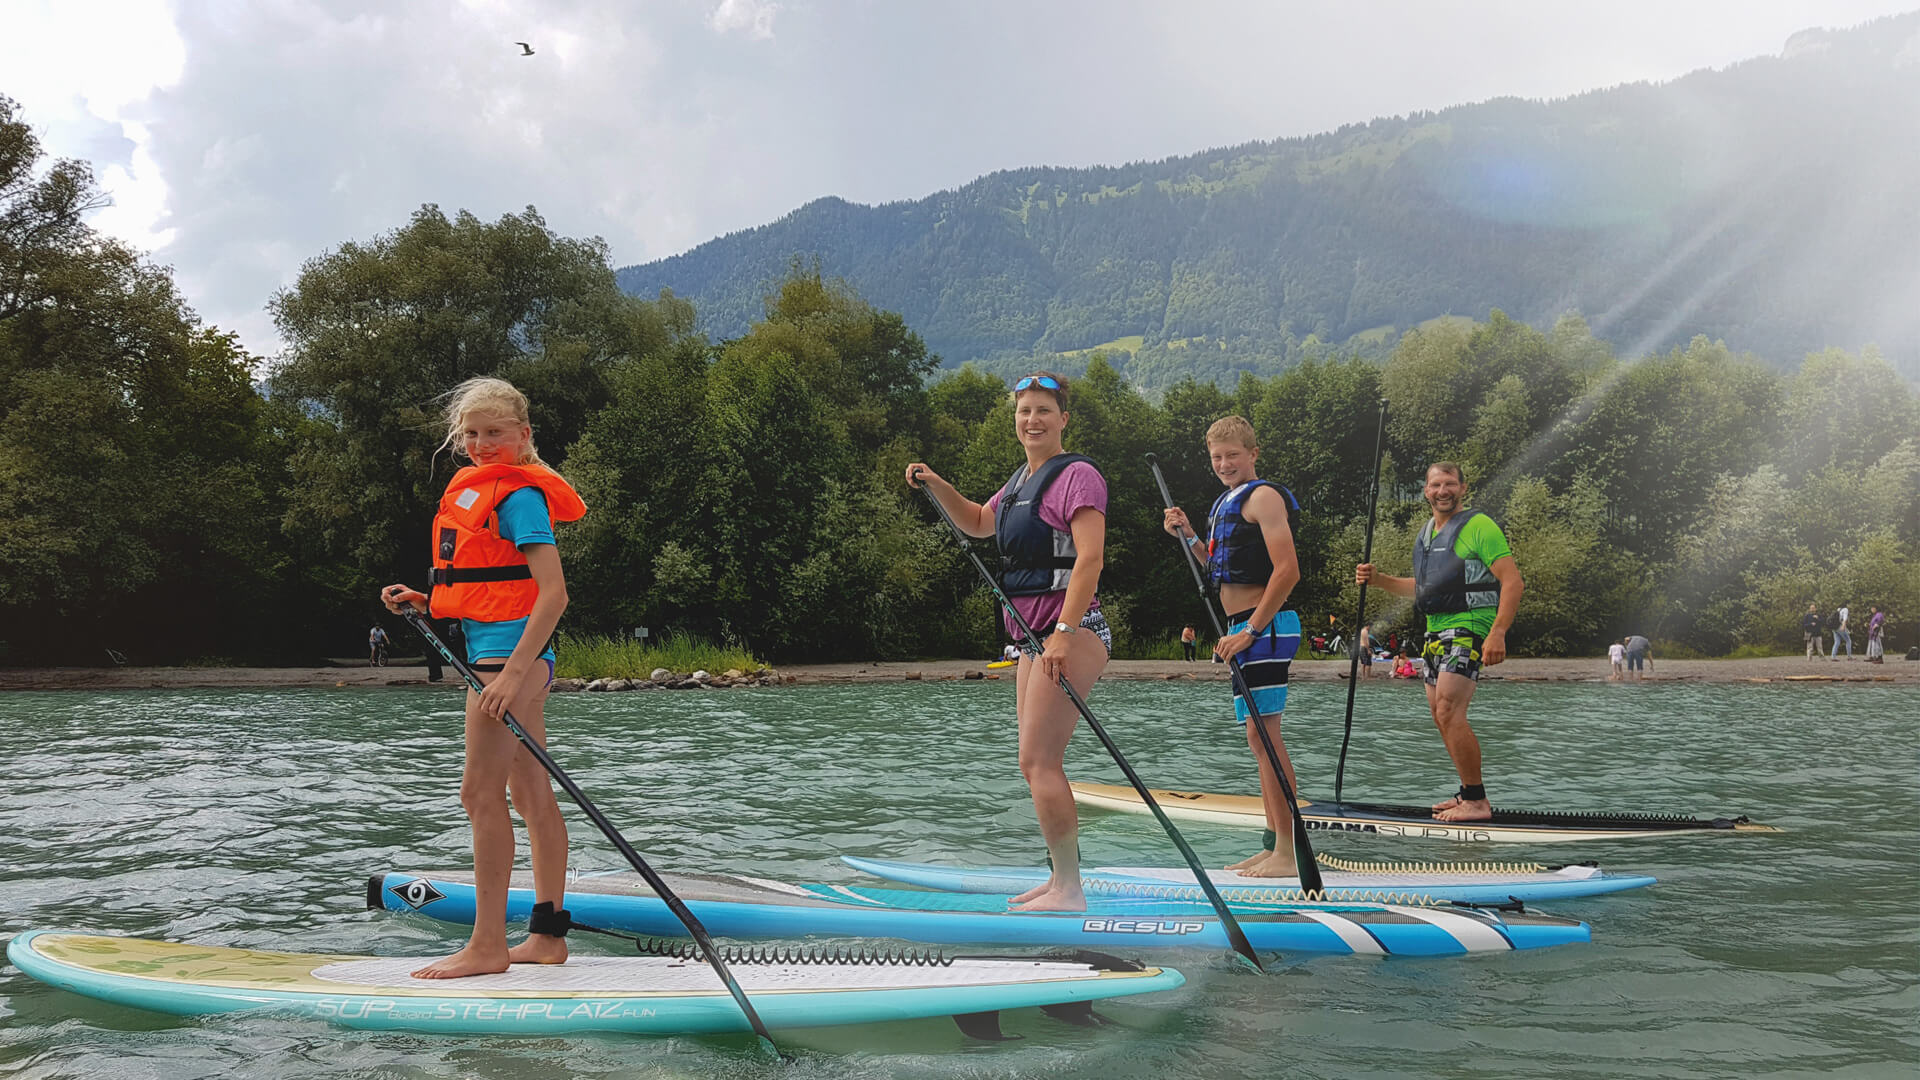 sup-fit-fun-brienzersee-gruppe-sup